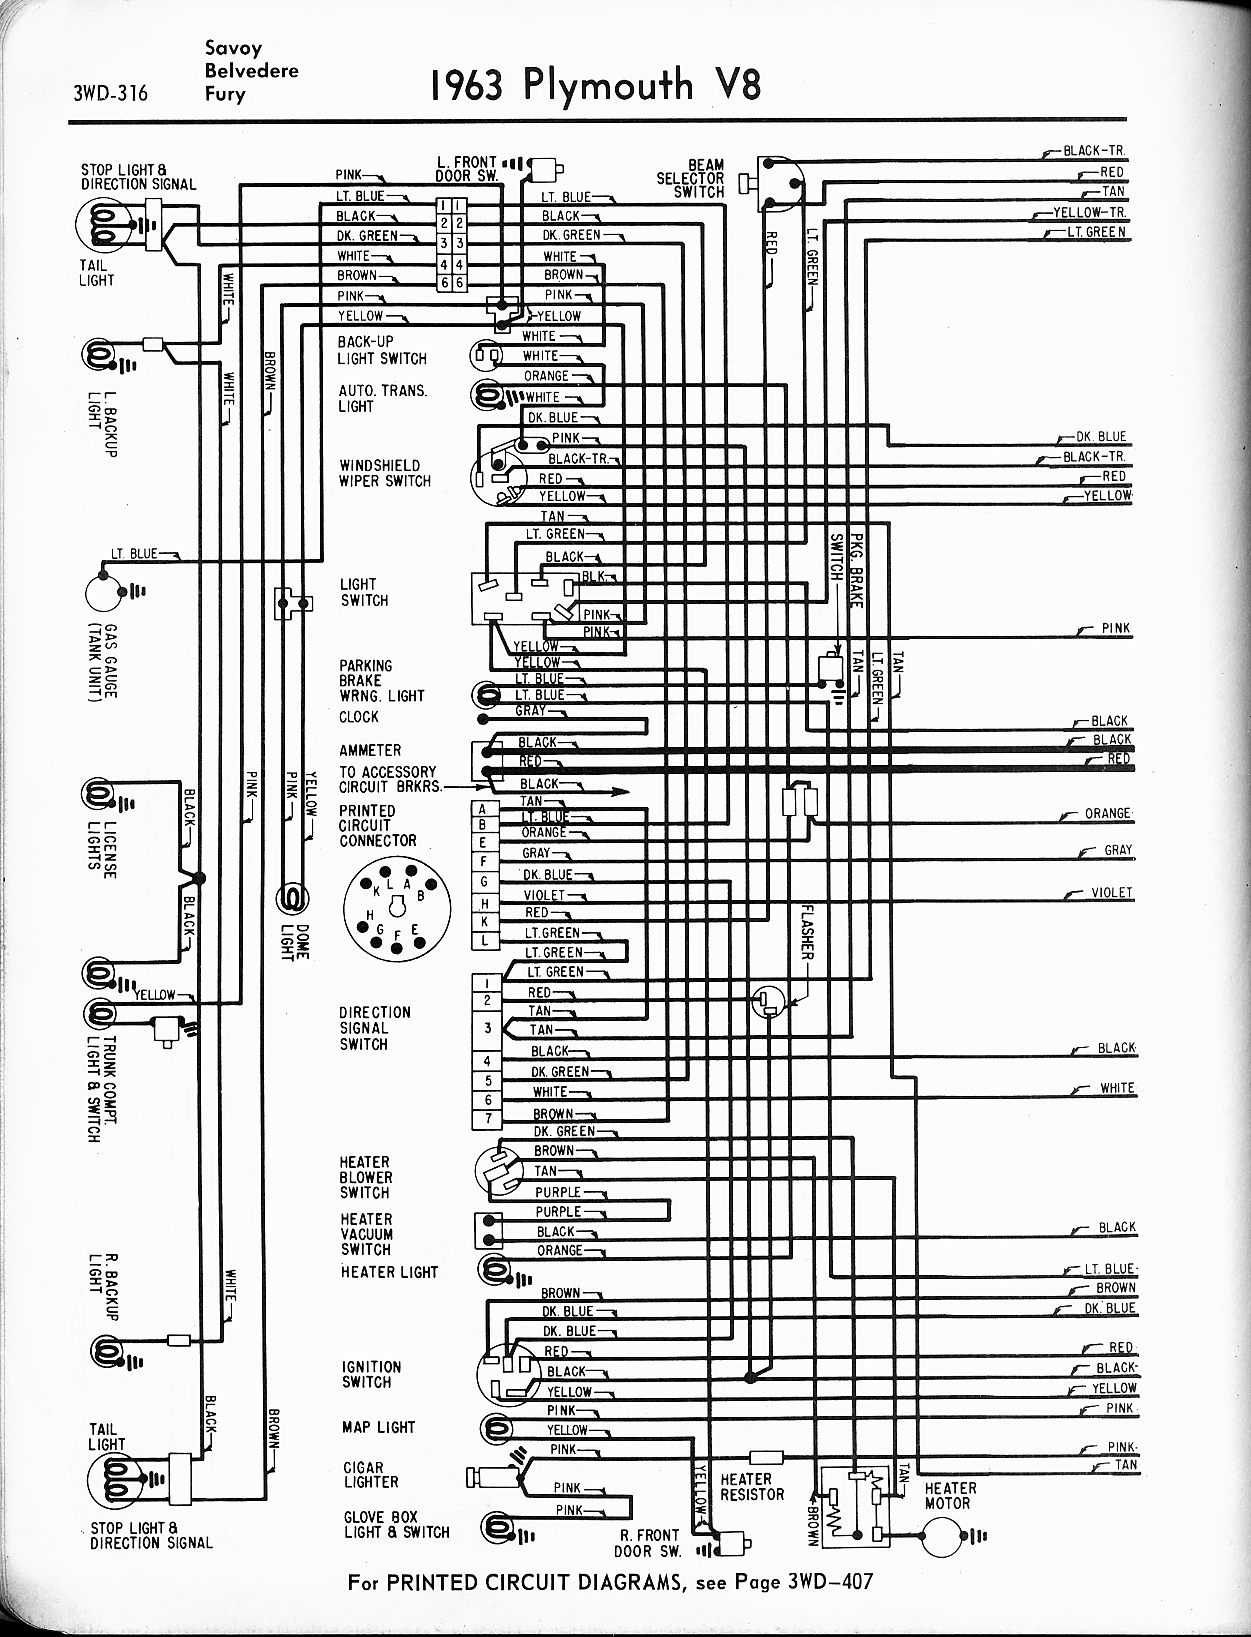 MWire5765 316 3800 series 2 wiring diagram gm ecu pinout \u2022 wiring diagrams j  at readyjetset.co